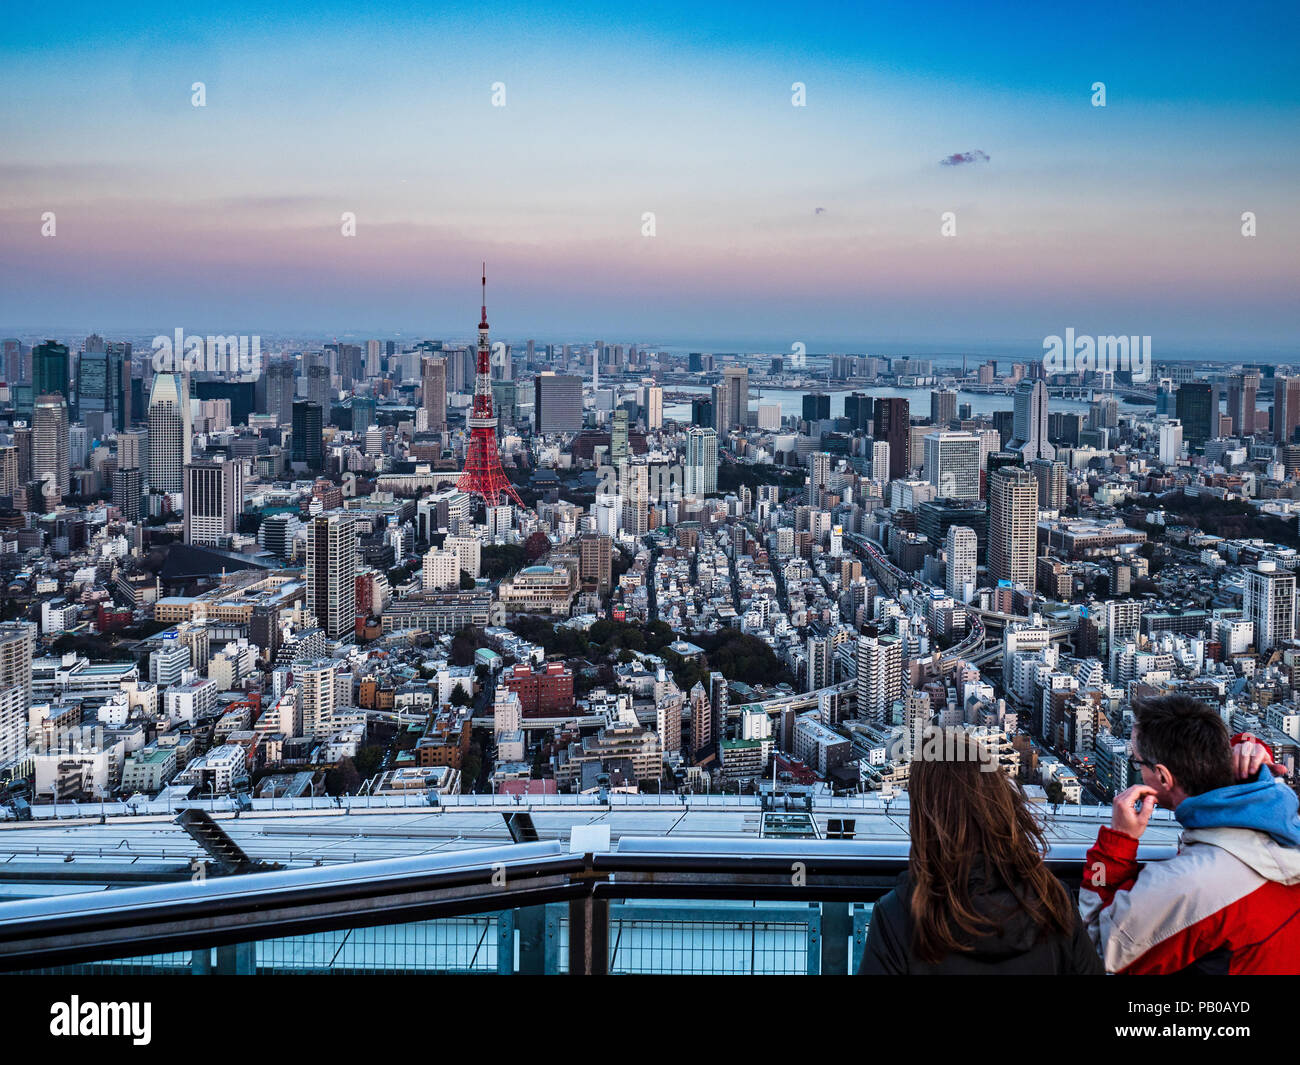 Tokyo Tourism Tokyo Skyline Tokyo Cityscape Tokyo Twilight - Tourists view Tokyo at dusk including the Tokyo Tower - Stock Image